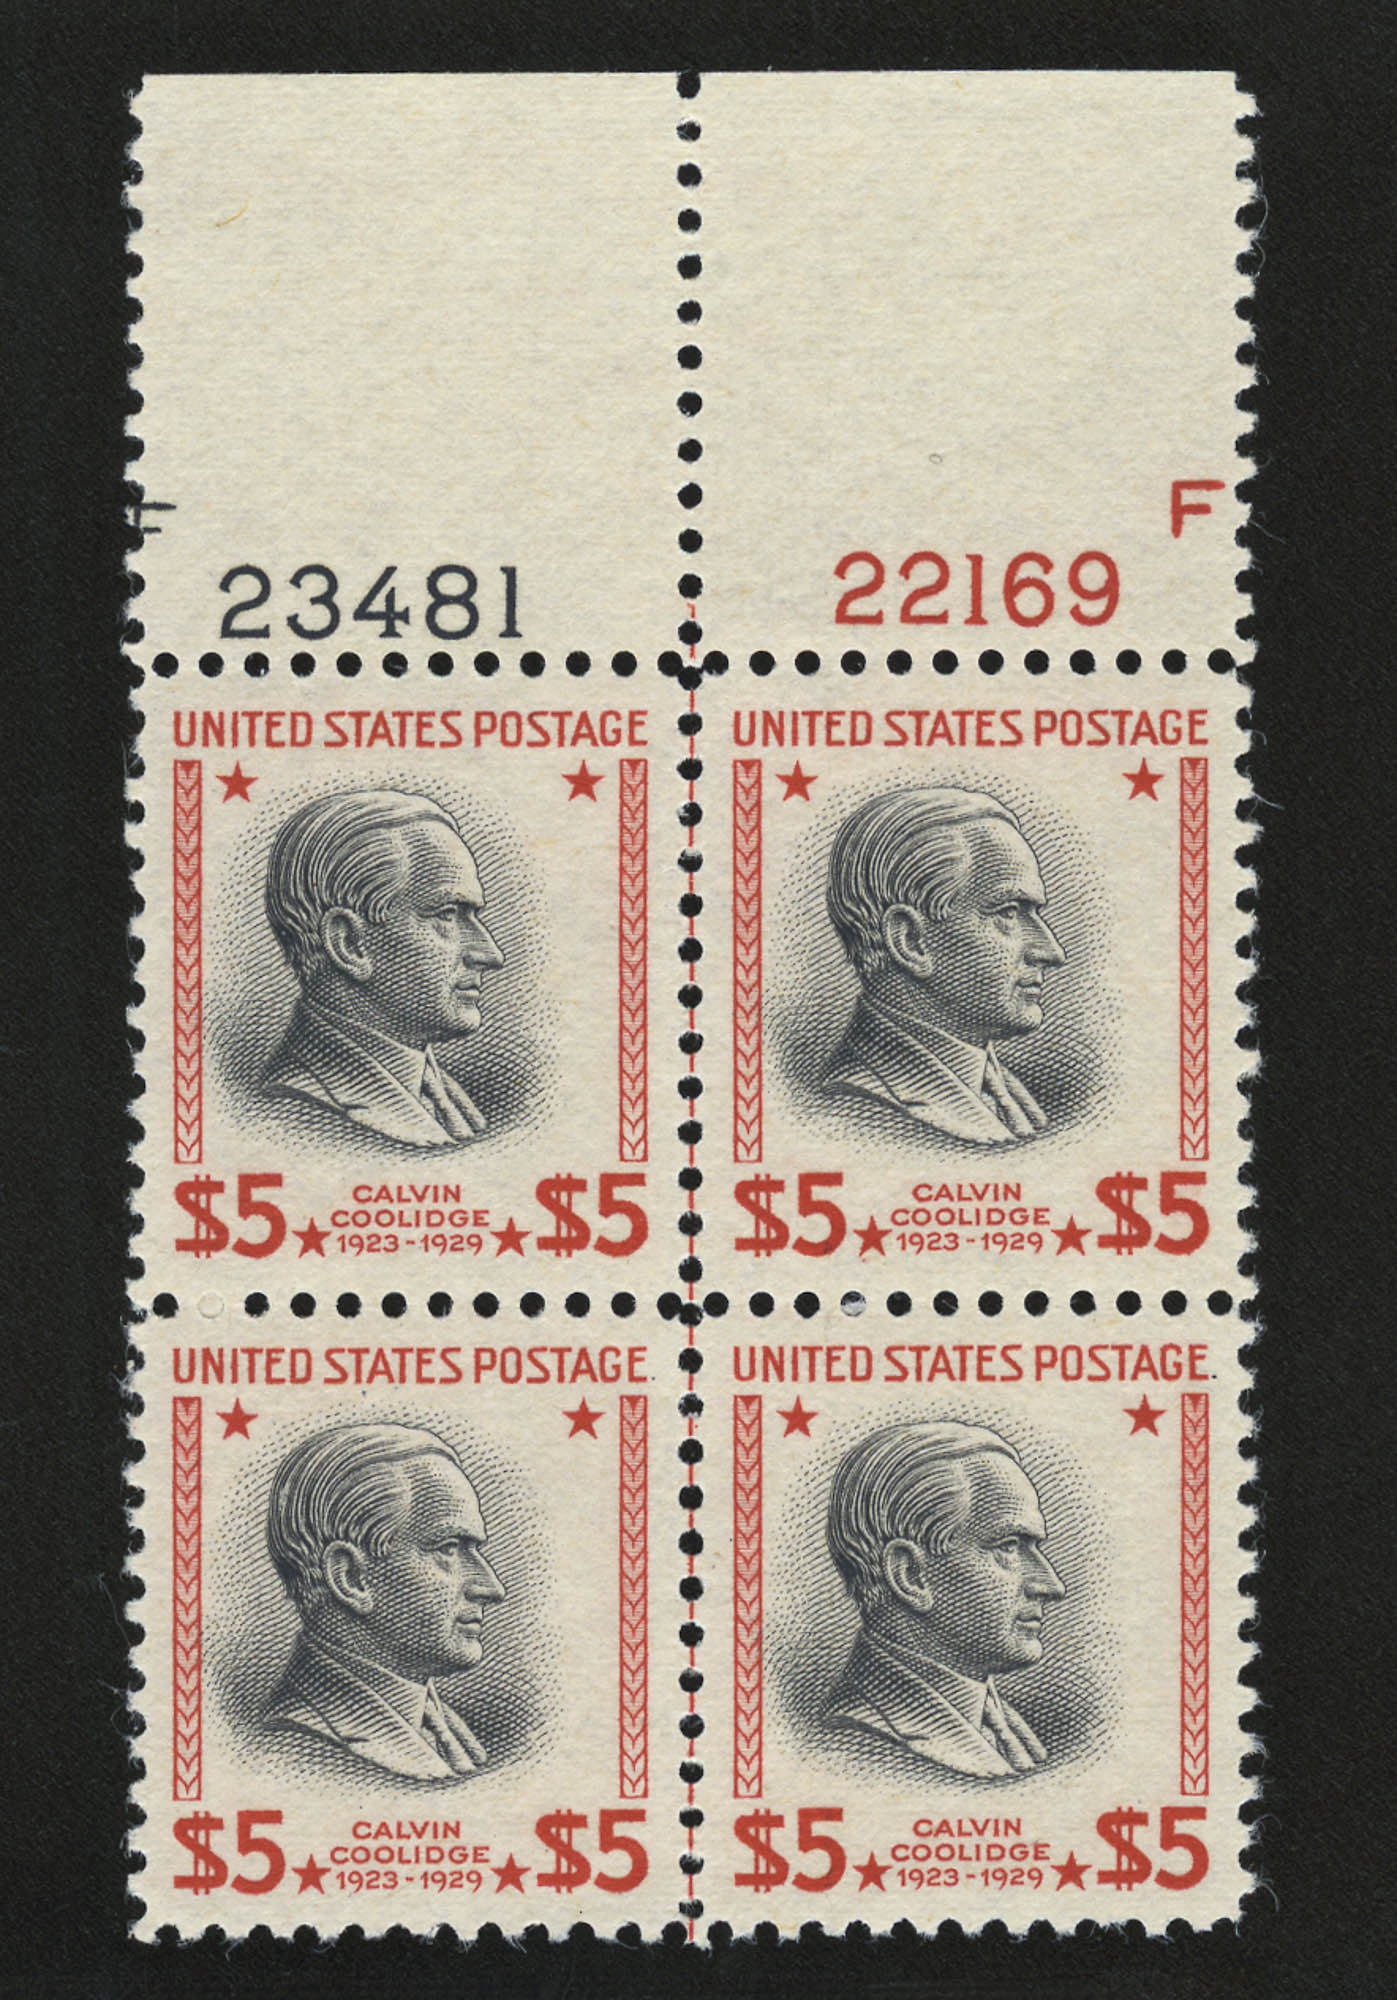 Lot image - United States 1938 $5 Presidential Plate Block